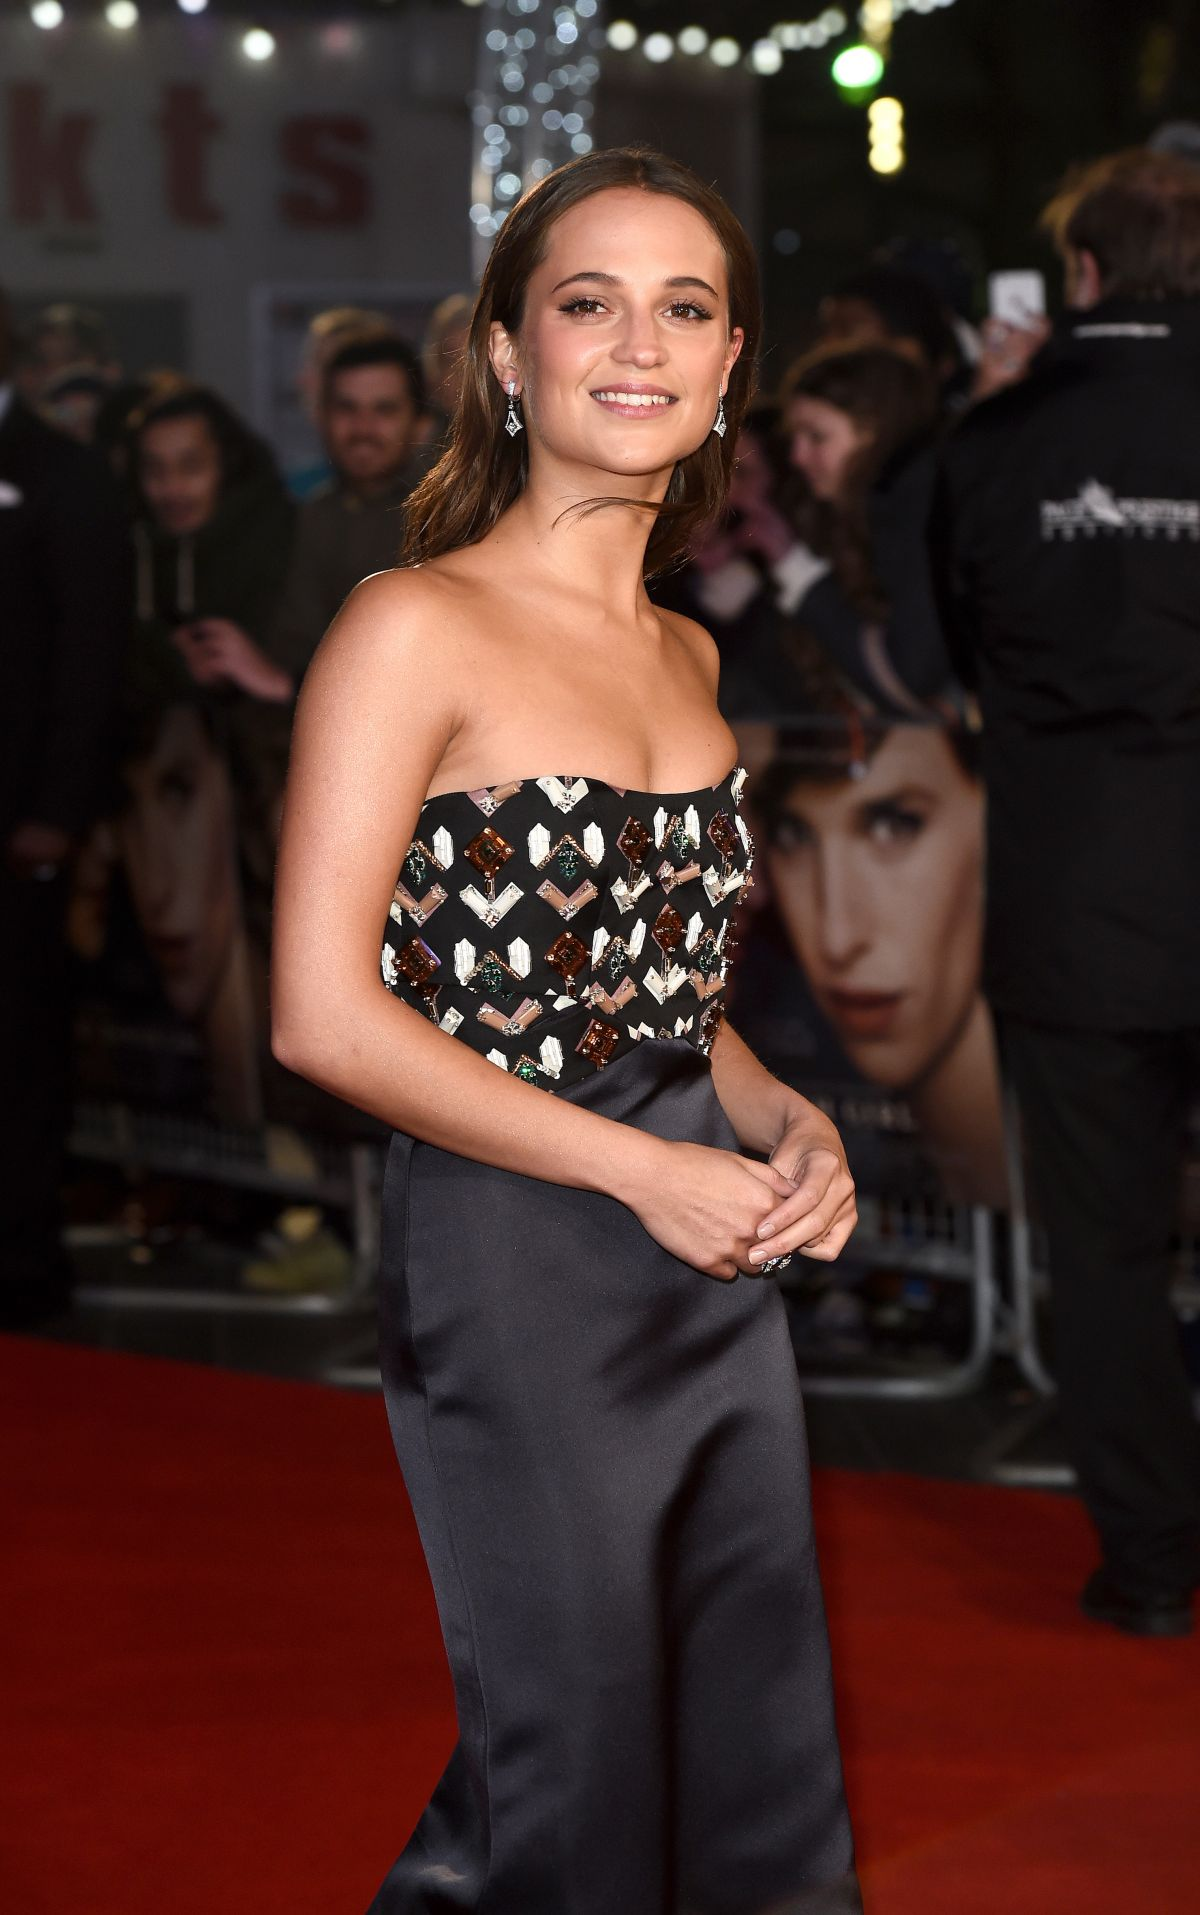 ALICIA VIKANDER at The Danish Girl Premiere in London 12/08/2015